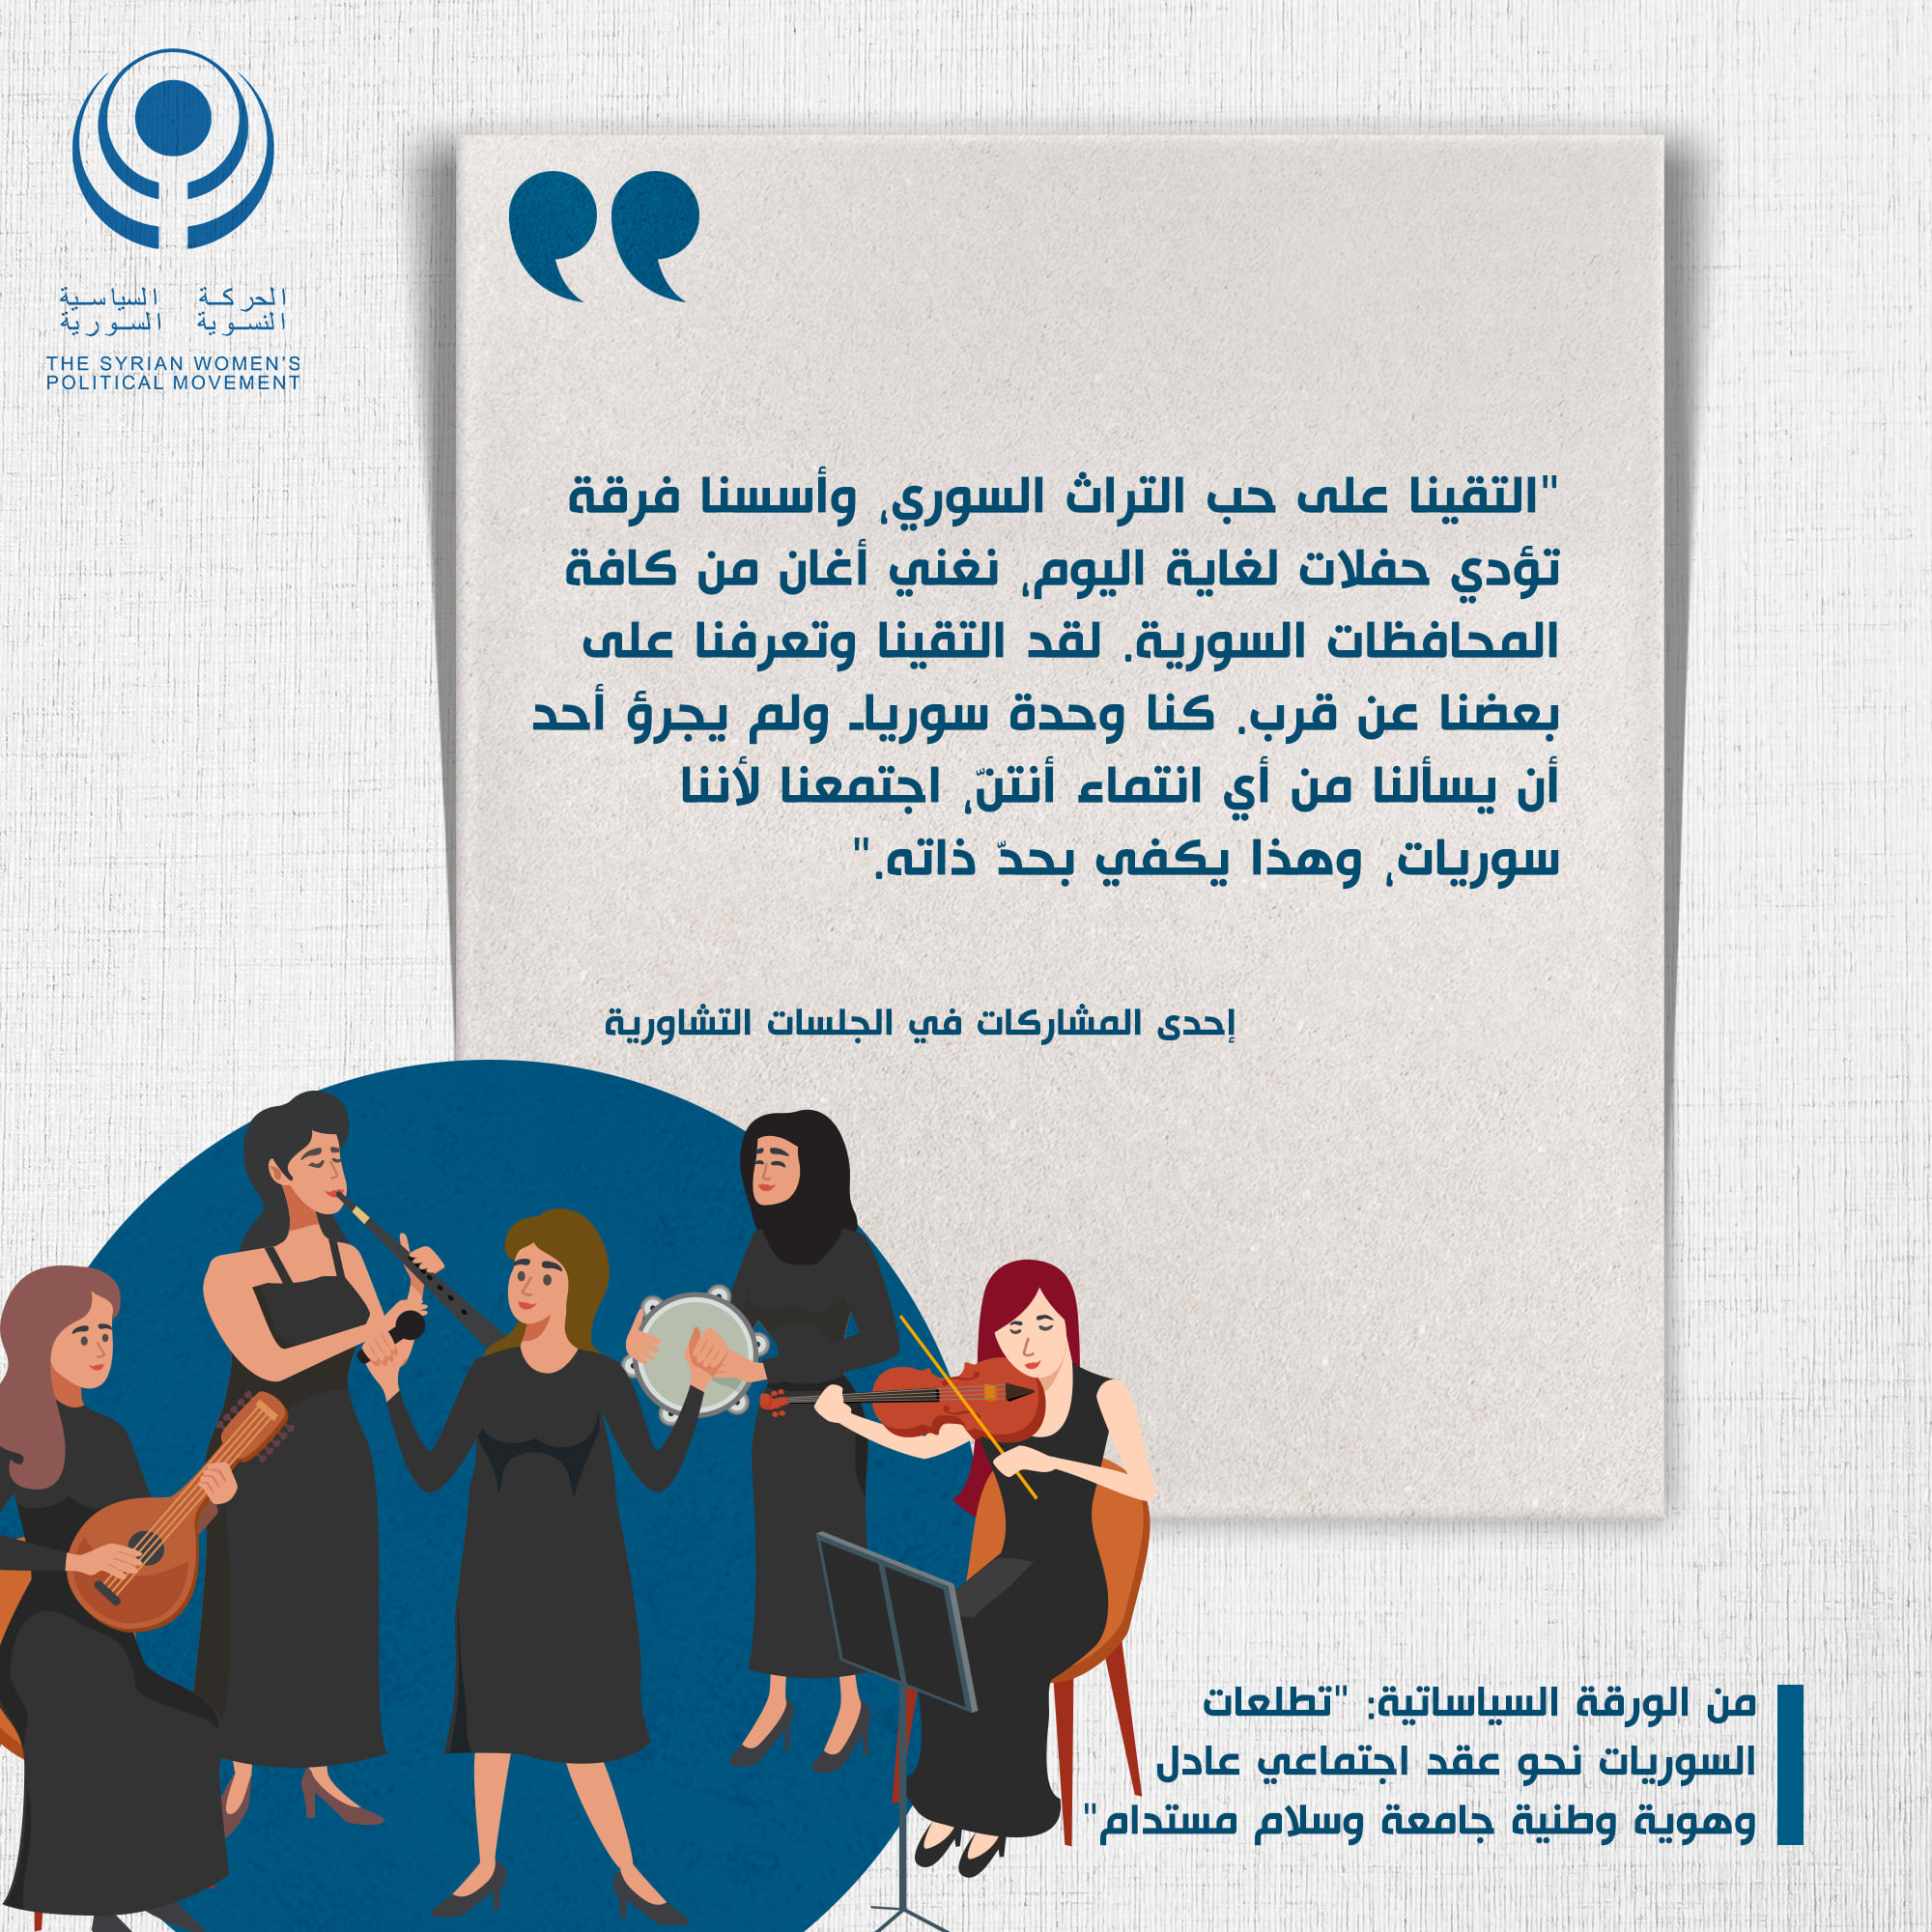 Syrian Women's Aspirations for a Just Social Contract, an Inclusive National Identity, and Sustainable Peace